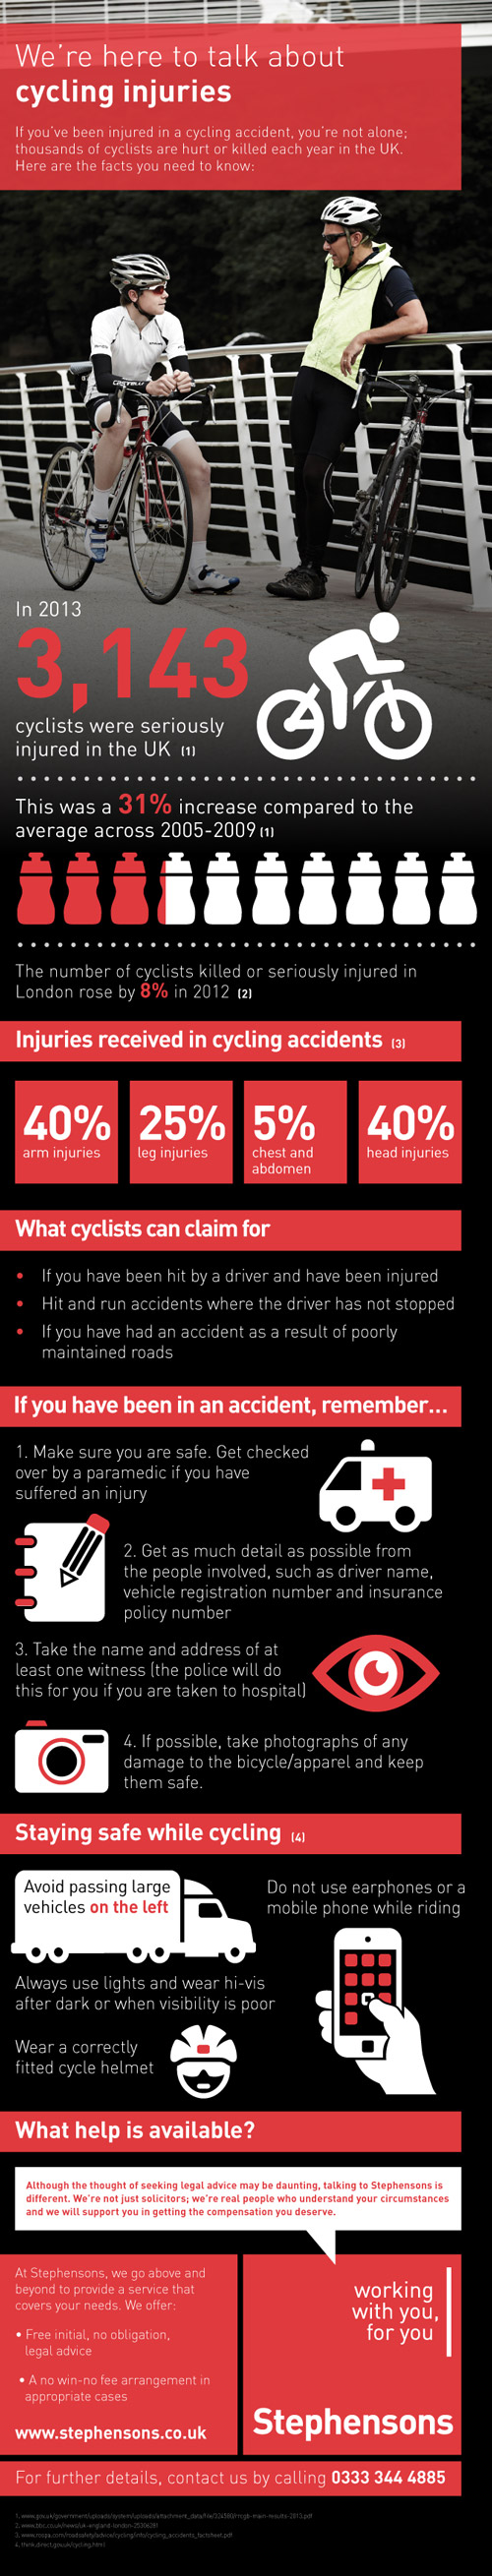 We're Here To Talk About Cycling Injuries